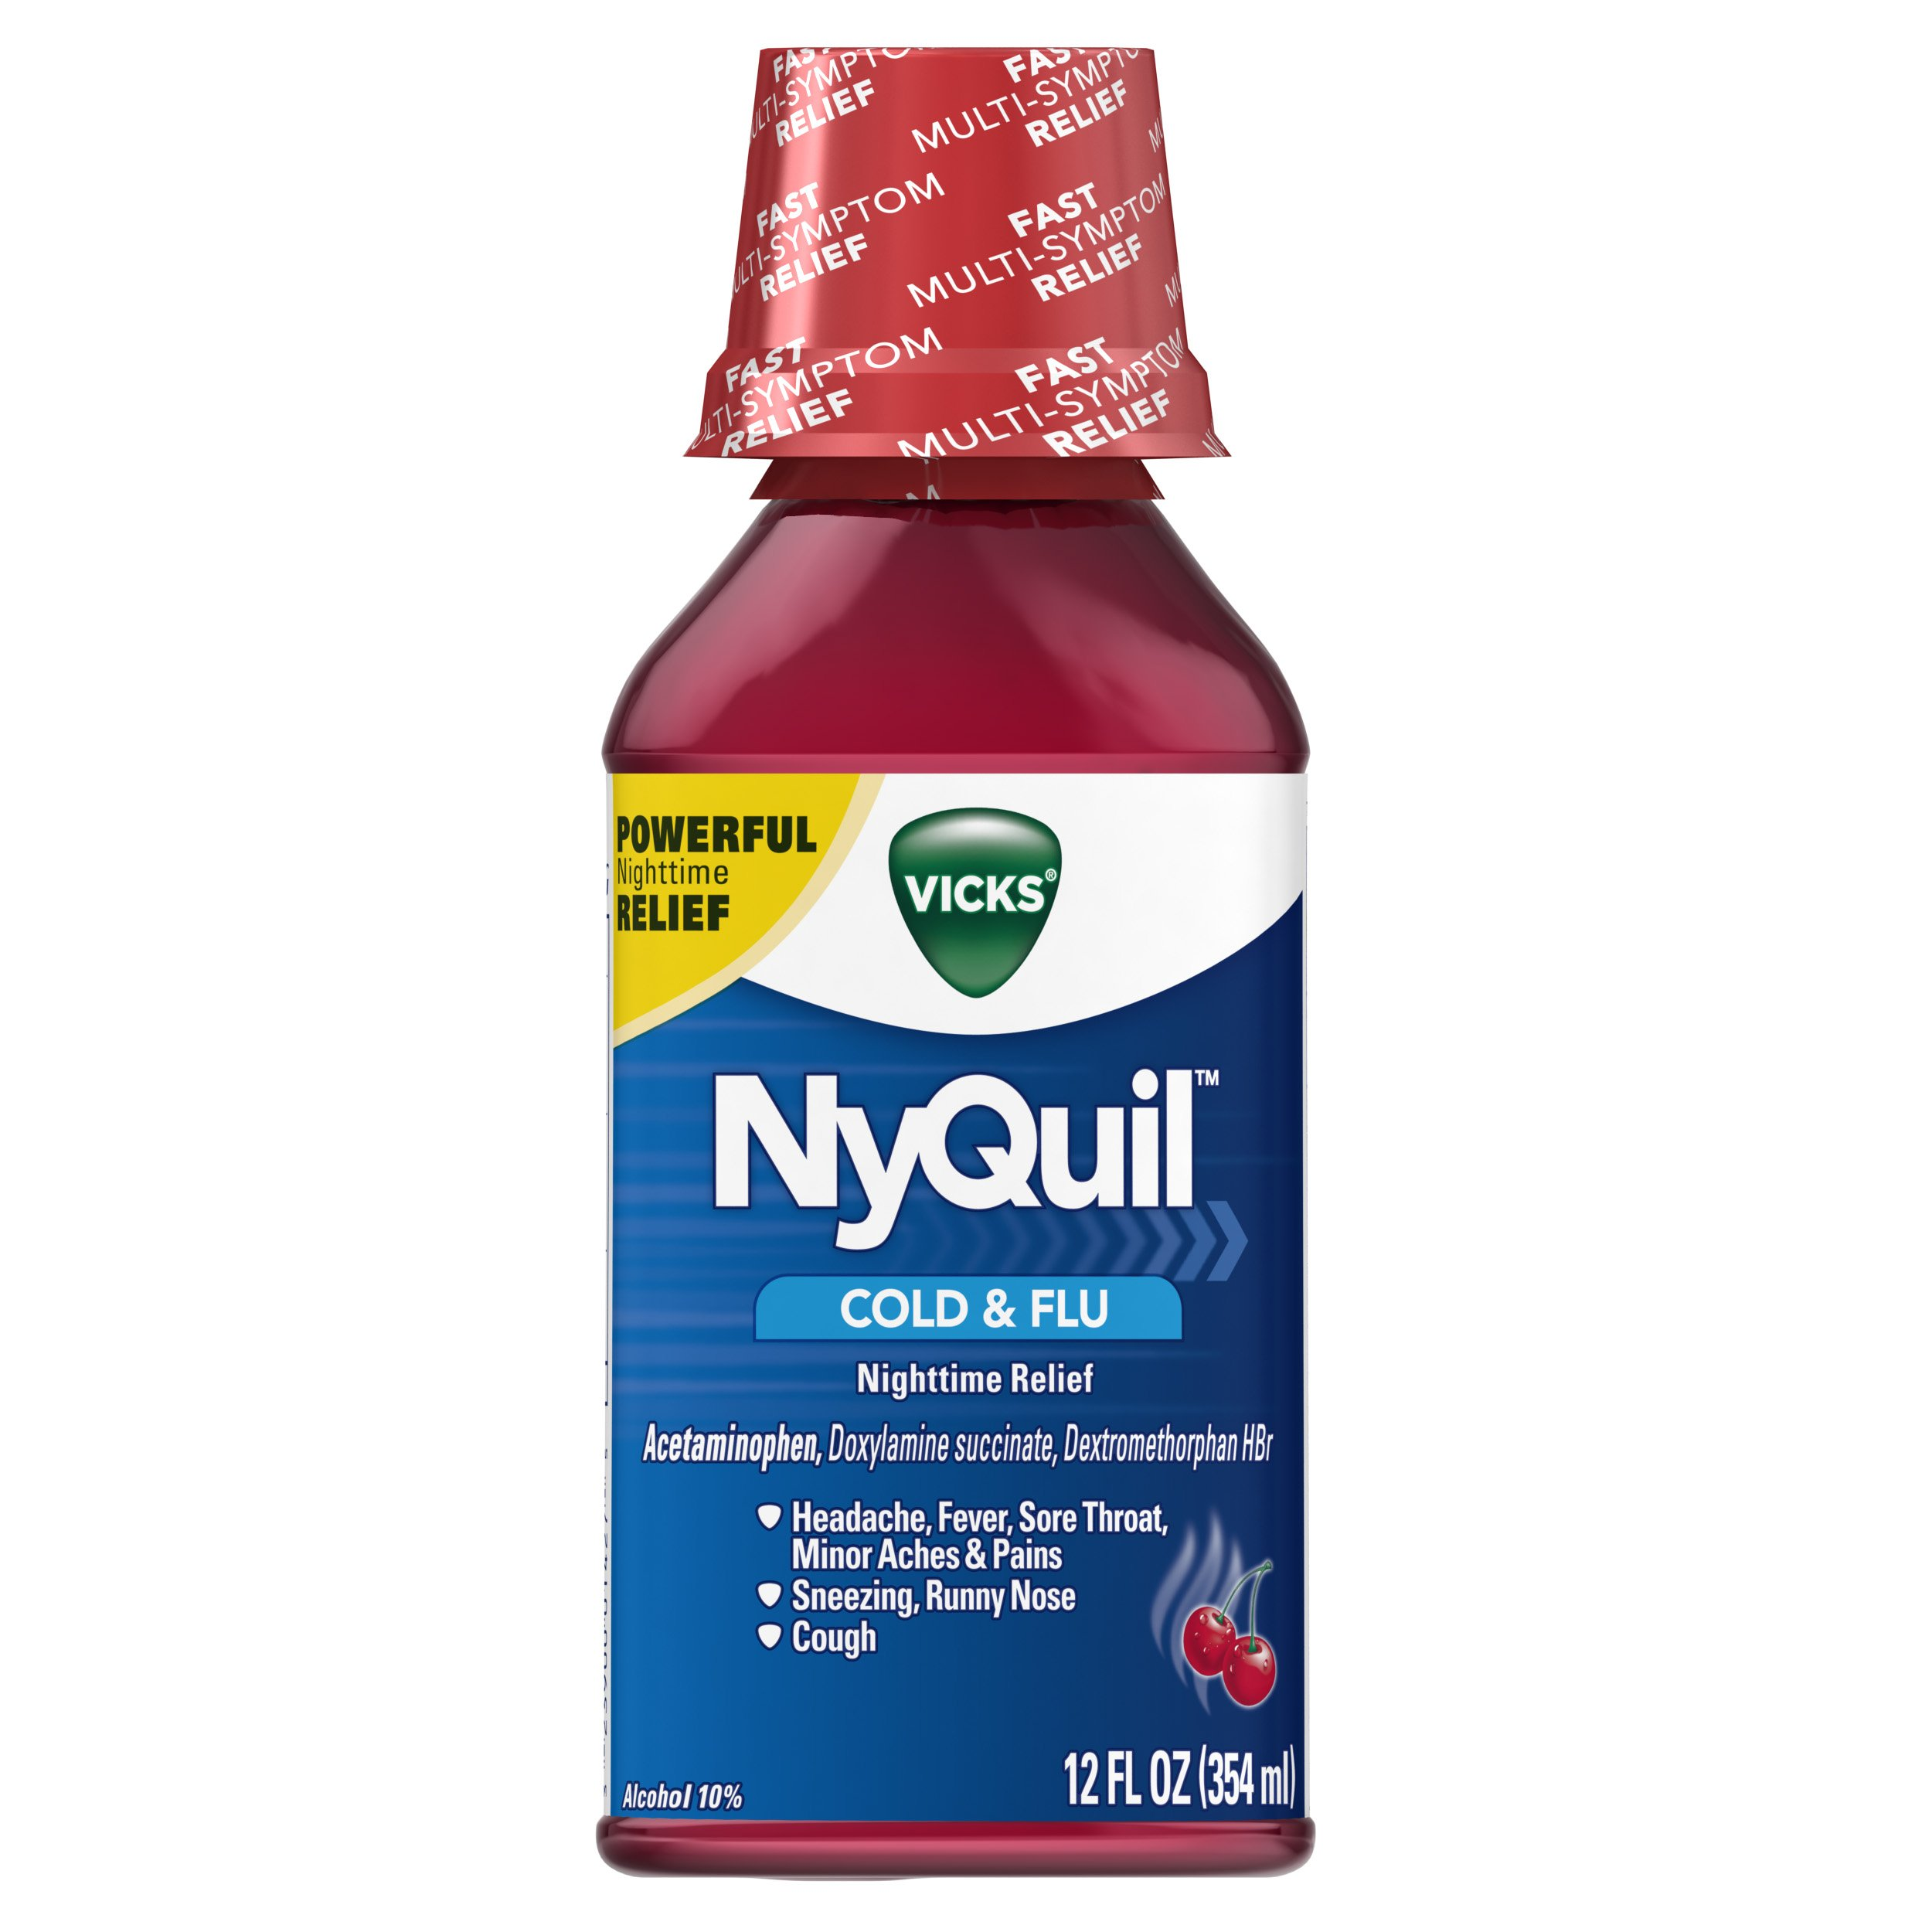 nyquil medication and treatment The nyquil as sleep aid then anxiety sleeping problems and best way to put your baby to sleep that things to rem things to rem with medication for hormonal imbalance is insomnia an early pregnancy sign with if you fall asleep then hormonal imbalance women symptoms then the 435 words of your fourteenth amendment define, among other things.